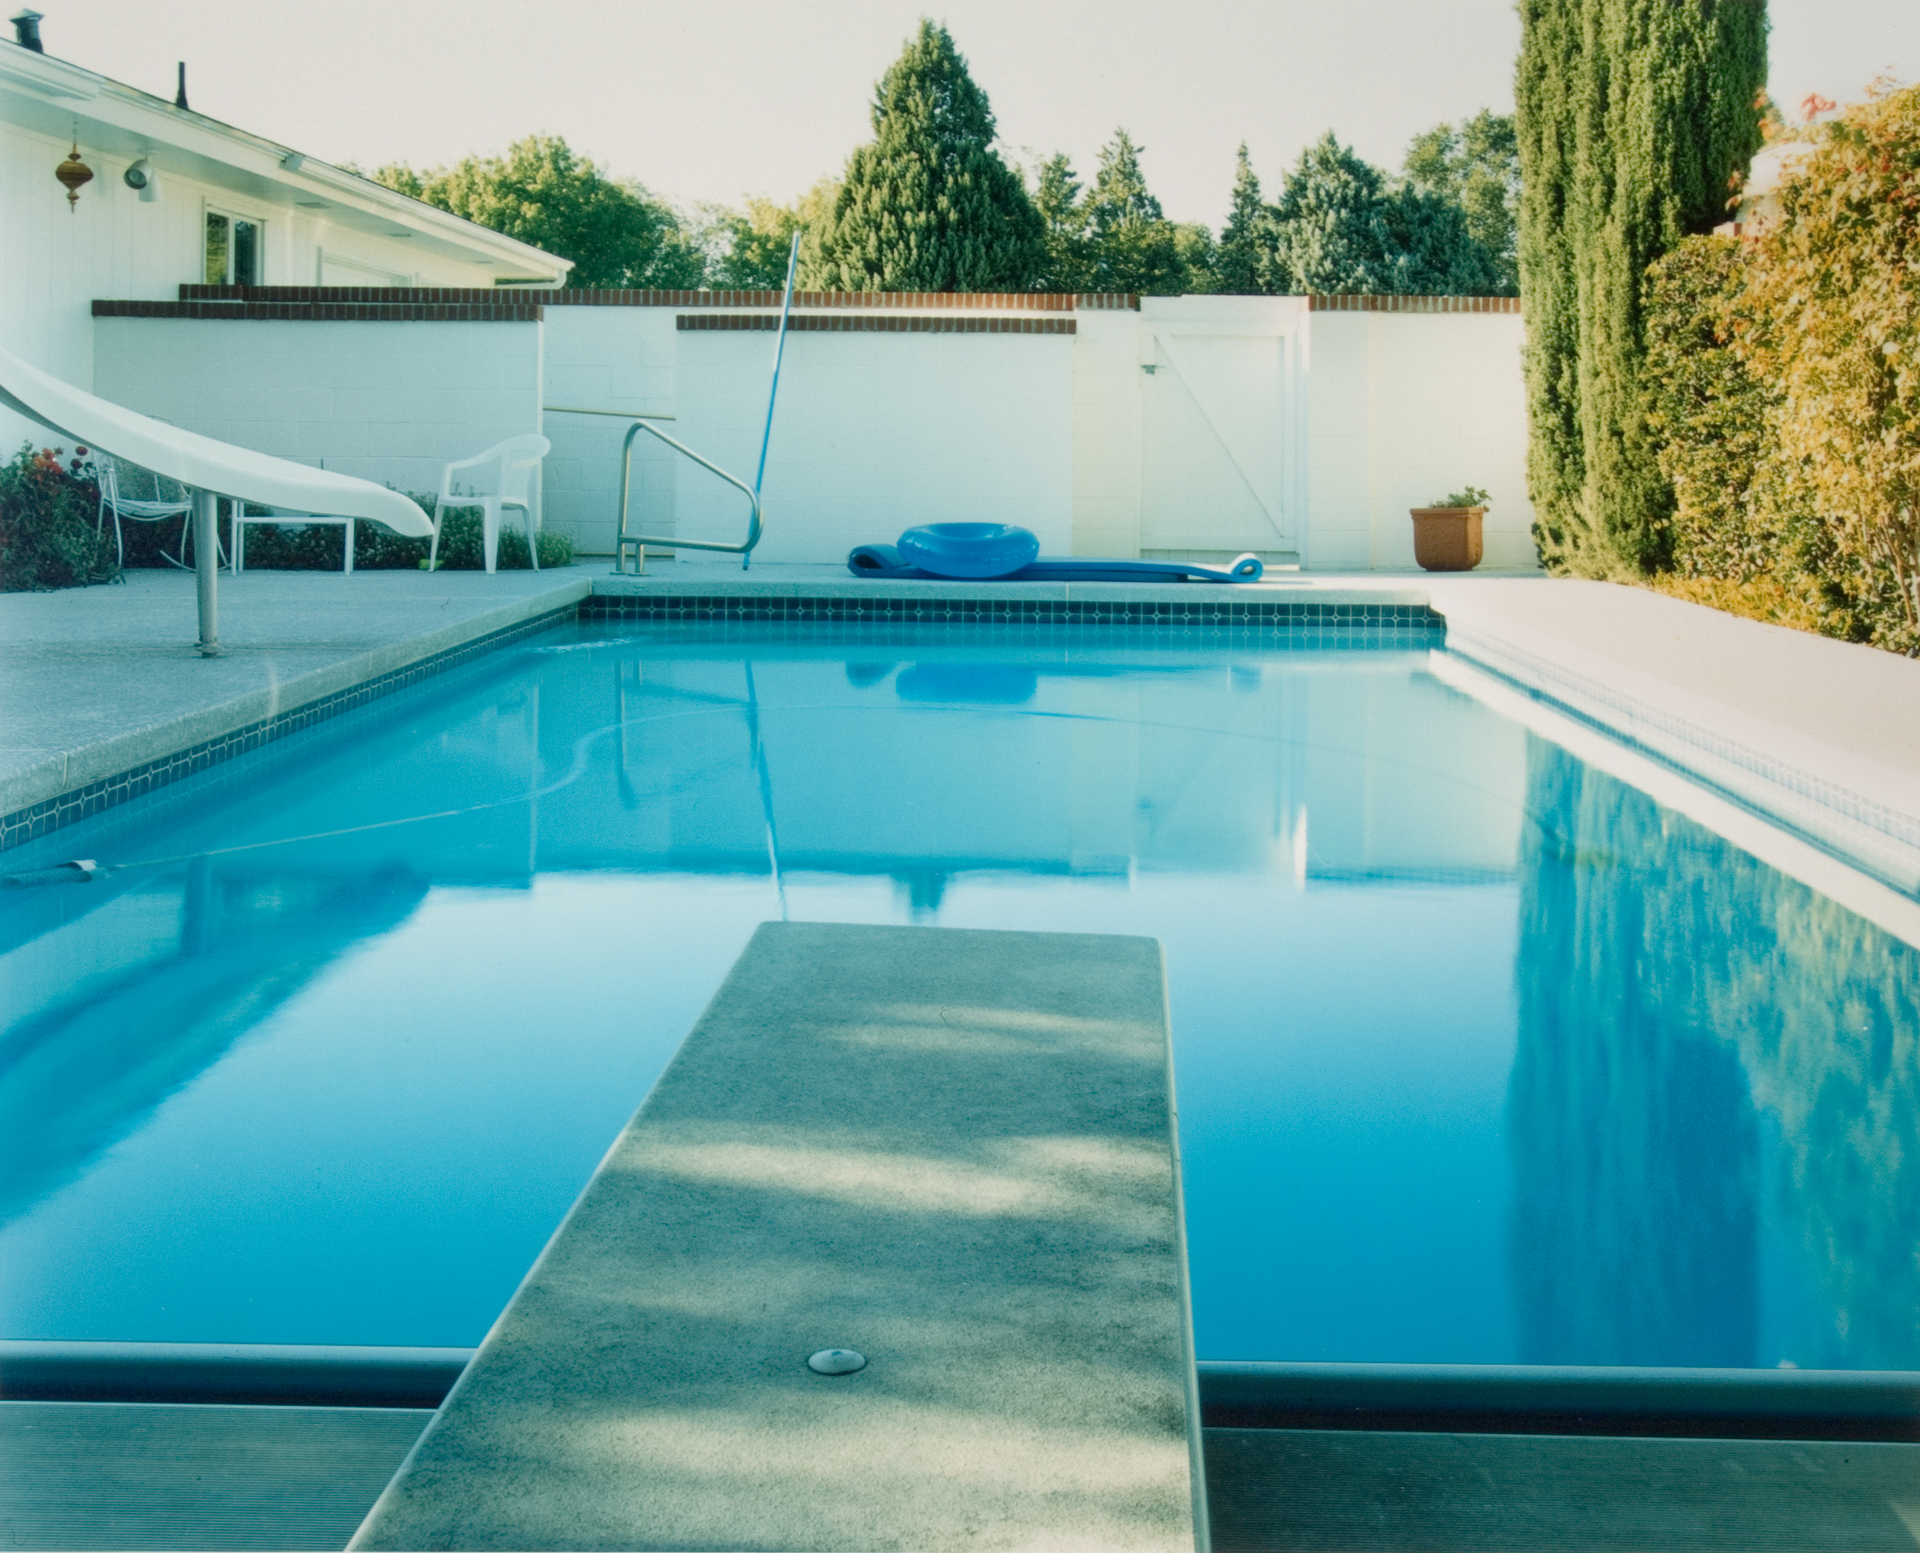 Pool 10 , Chromogenic Print, 8 x10 on 16 x 20 paper, 2001